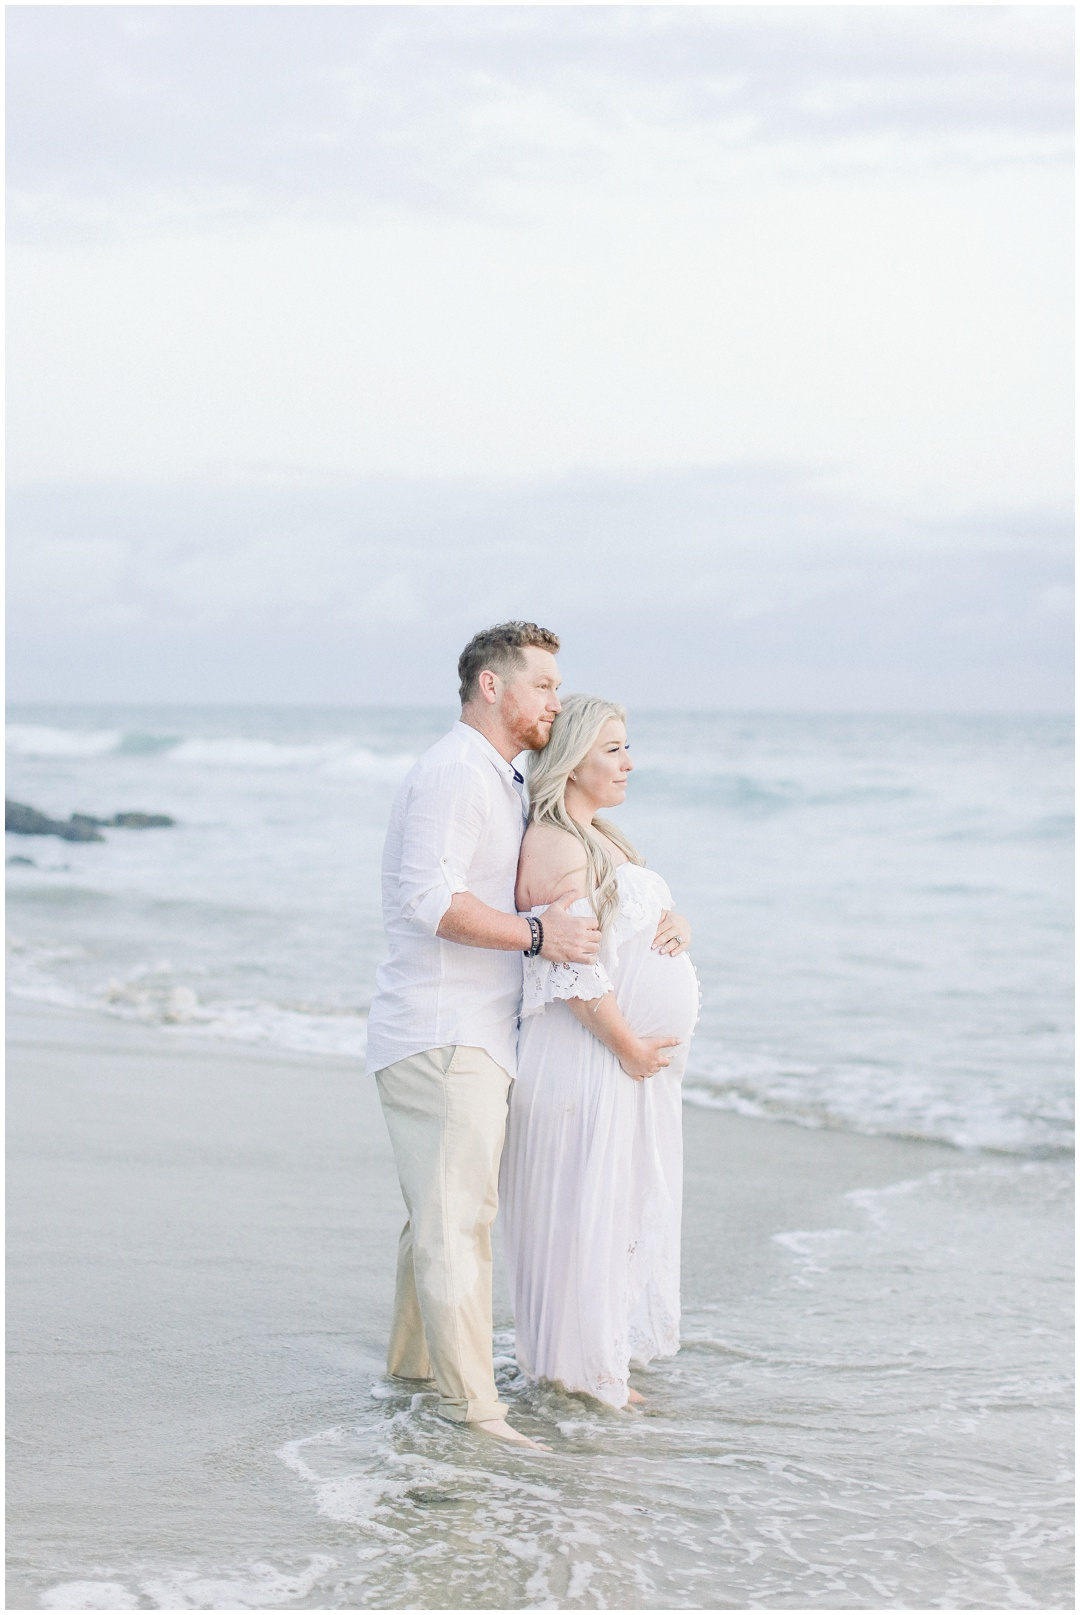 Newport_Beach_Newborn_Light_Airy_Natural_Photographer_Newport_Beach_Photographer_Orange_County_Family_Photographer_Cori_Kleckner_Photography_Newport_Beach_Photographer_Maternity_kole_calhoun56_kole_calhoun_Jennifer_Calhoun_Knox_Calhoun_3720.jpg